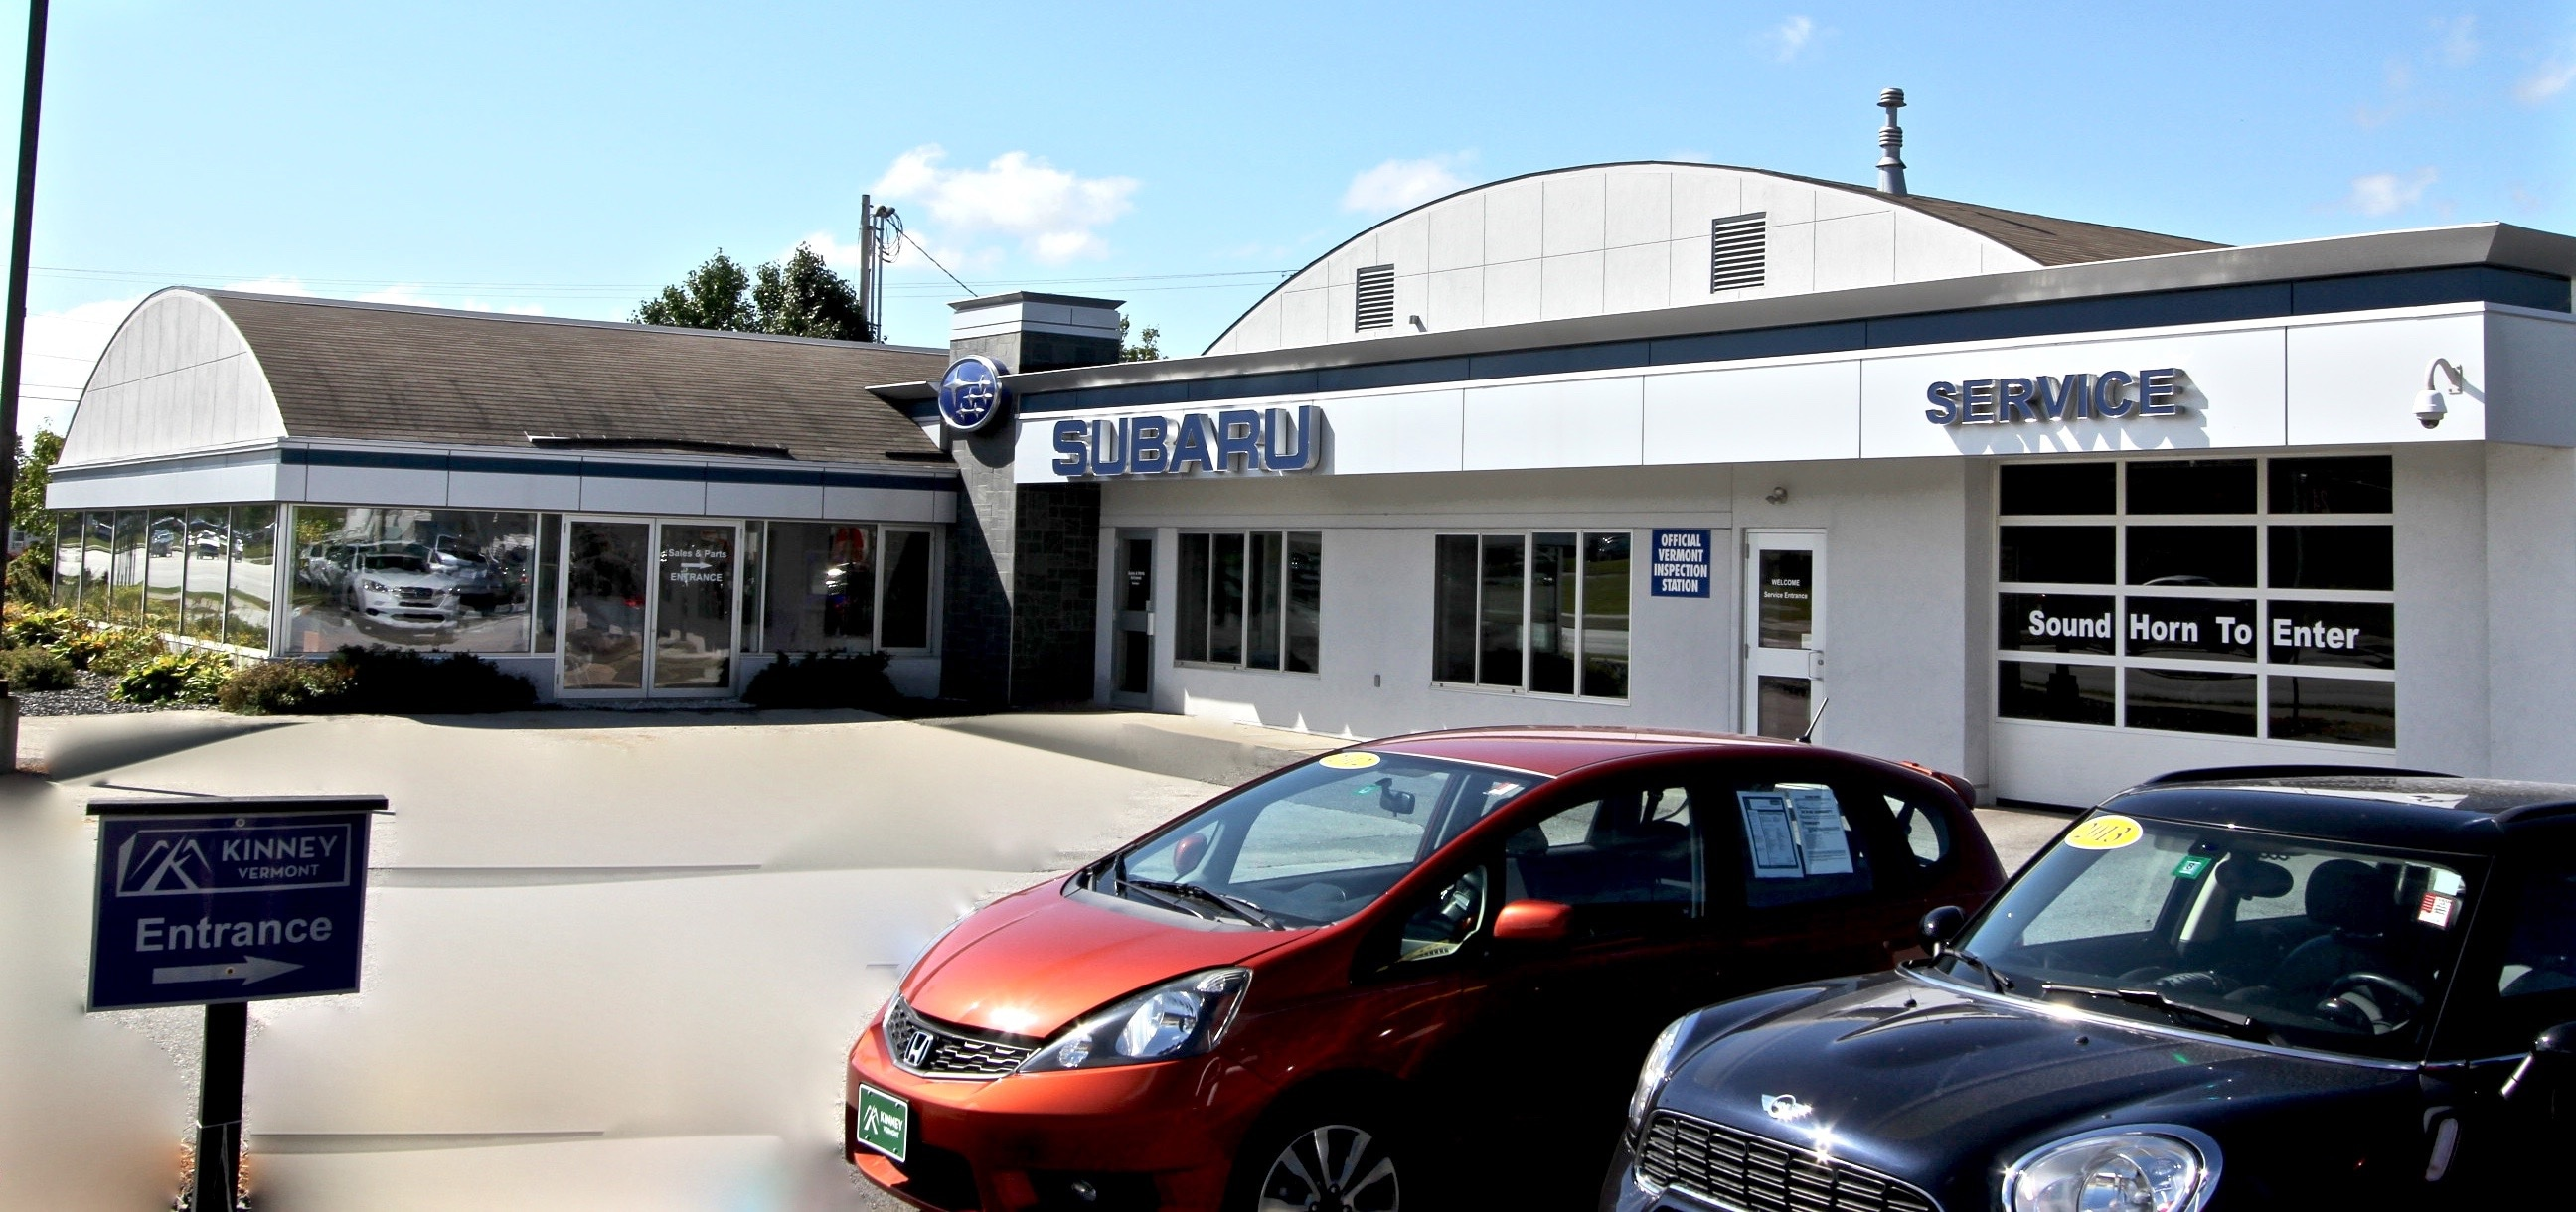 rutland subaru new subaru used car dealer in rutland vt autos post. Black Bedroom Furniture Sets. Home Design Ideas